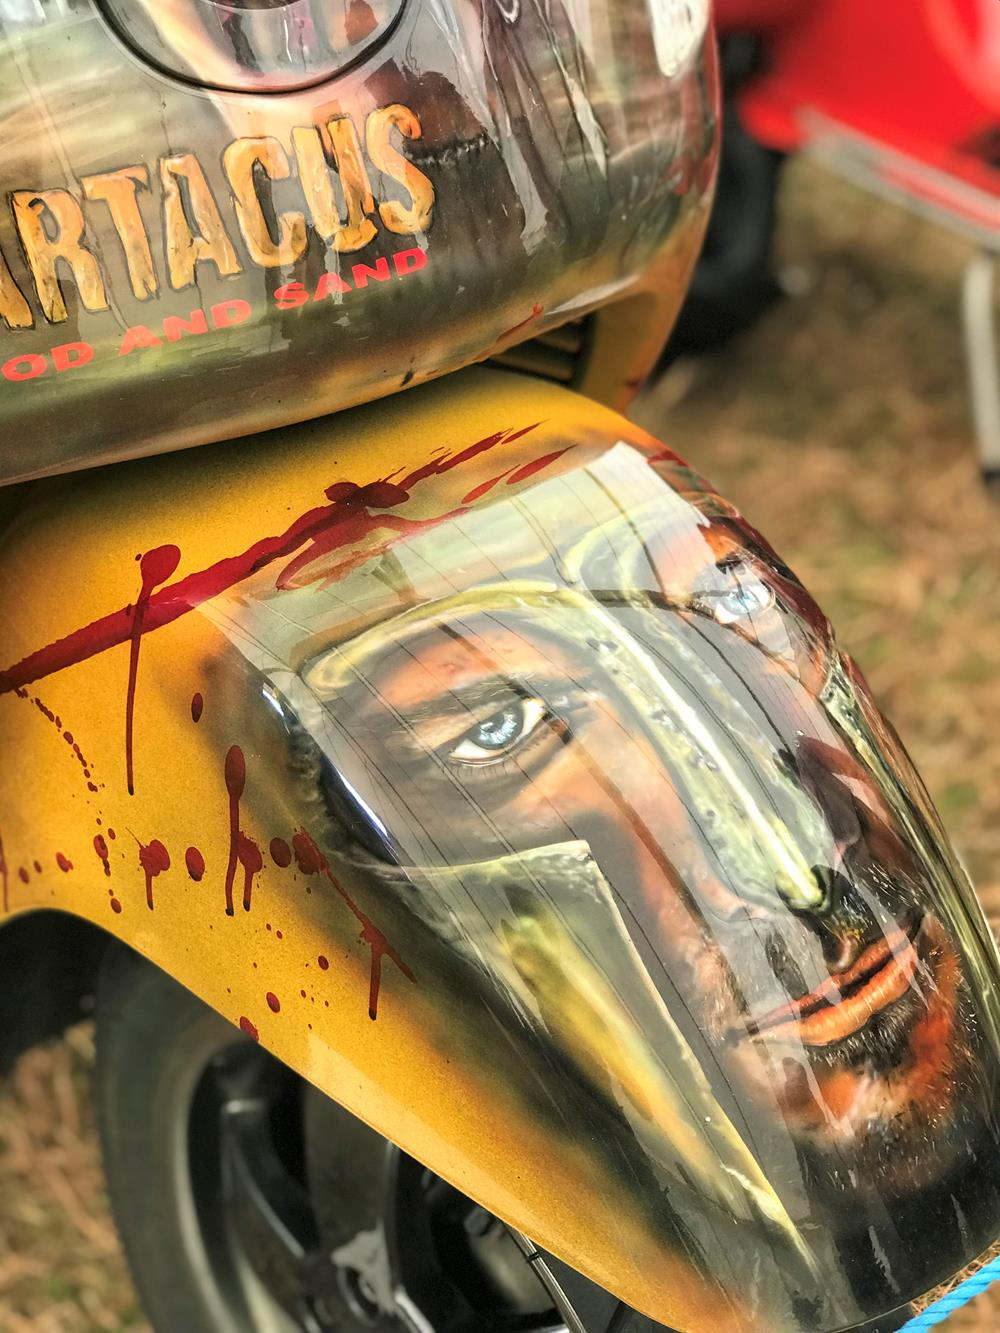 Front mudguard with Spartacus murals on custom Vespa GTS scooter